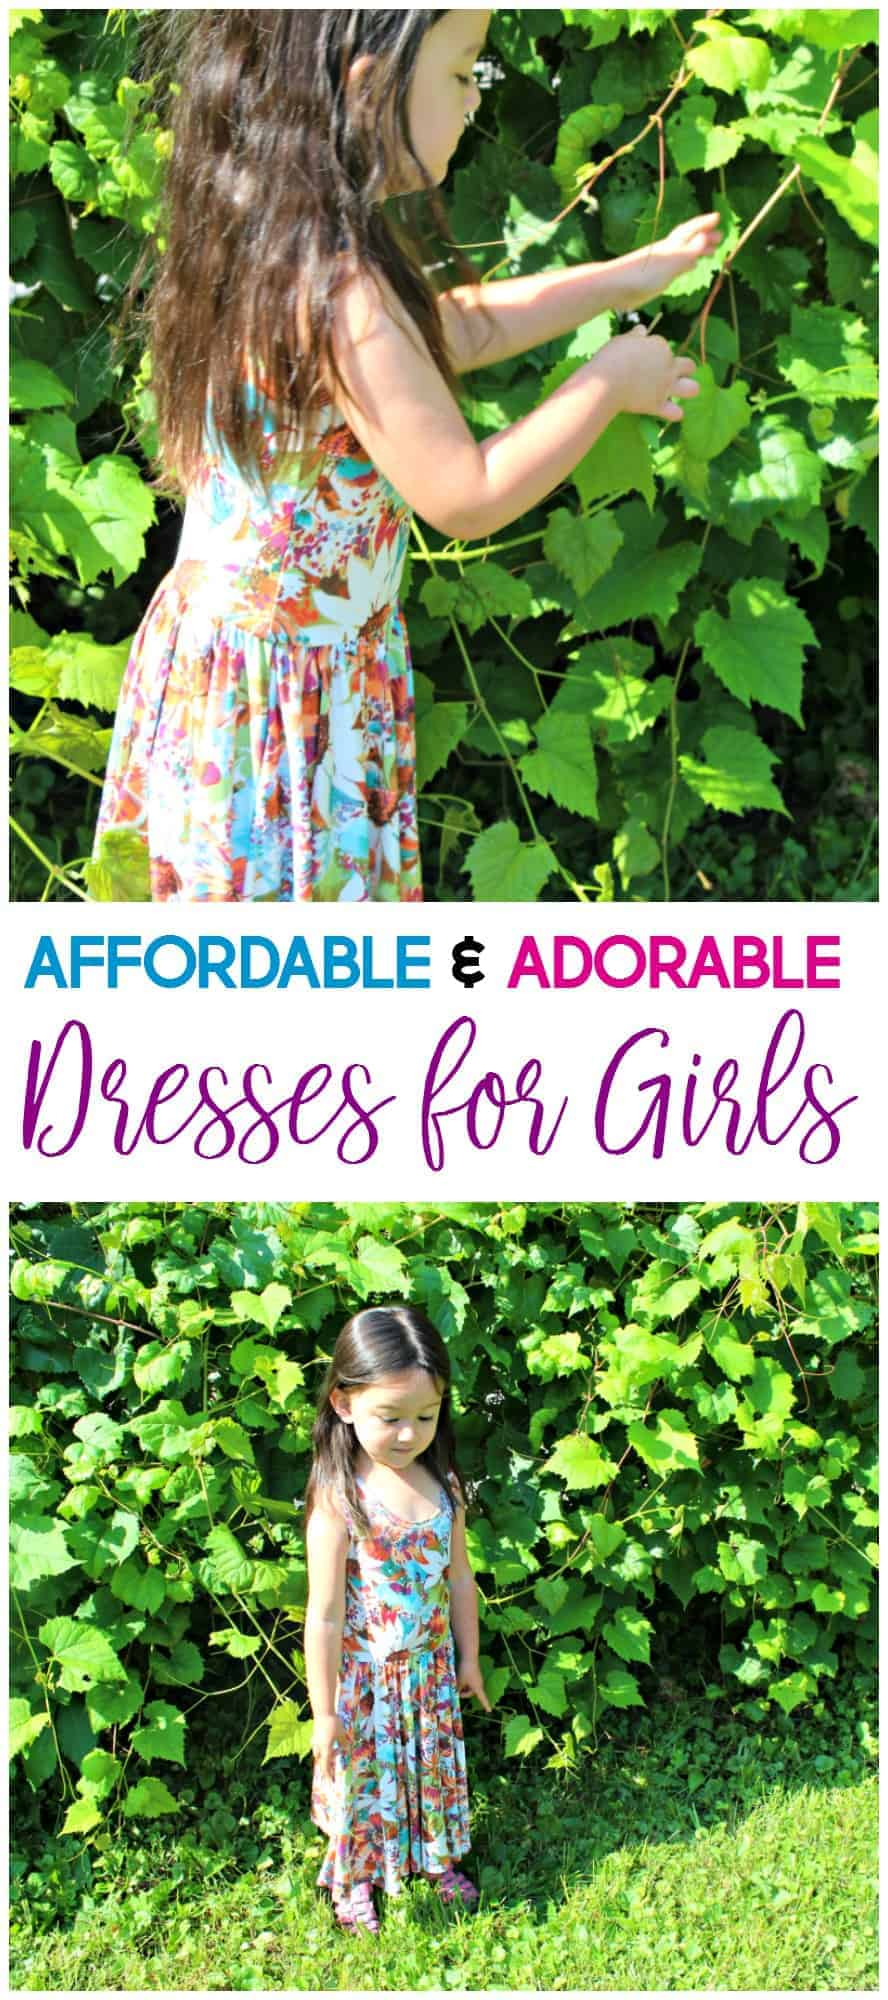 It would seem that I have a budding fashionista on my hands. Here's our new favorite place to get affordable and adorable dresses.